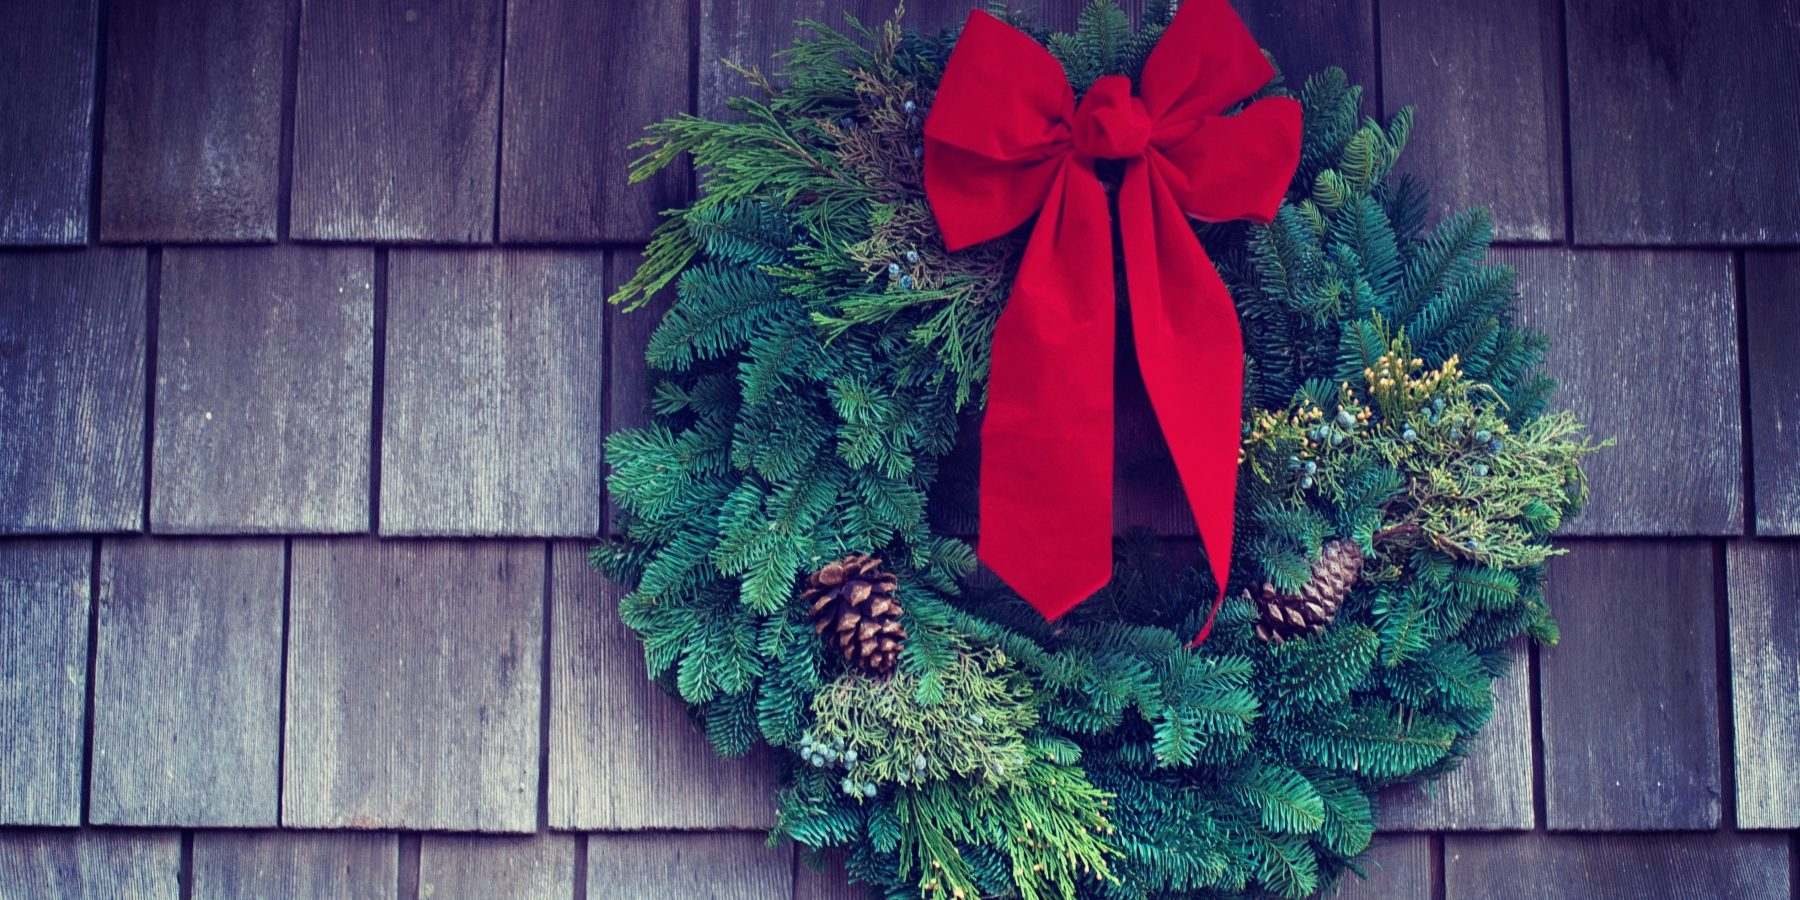 christmas_wreath_iosw4q9ozle-tim-mossholder